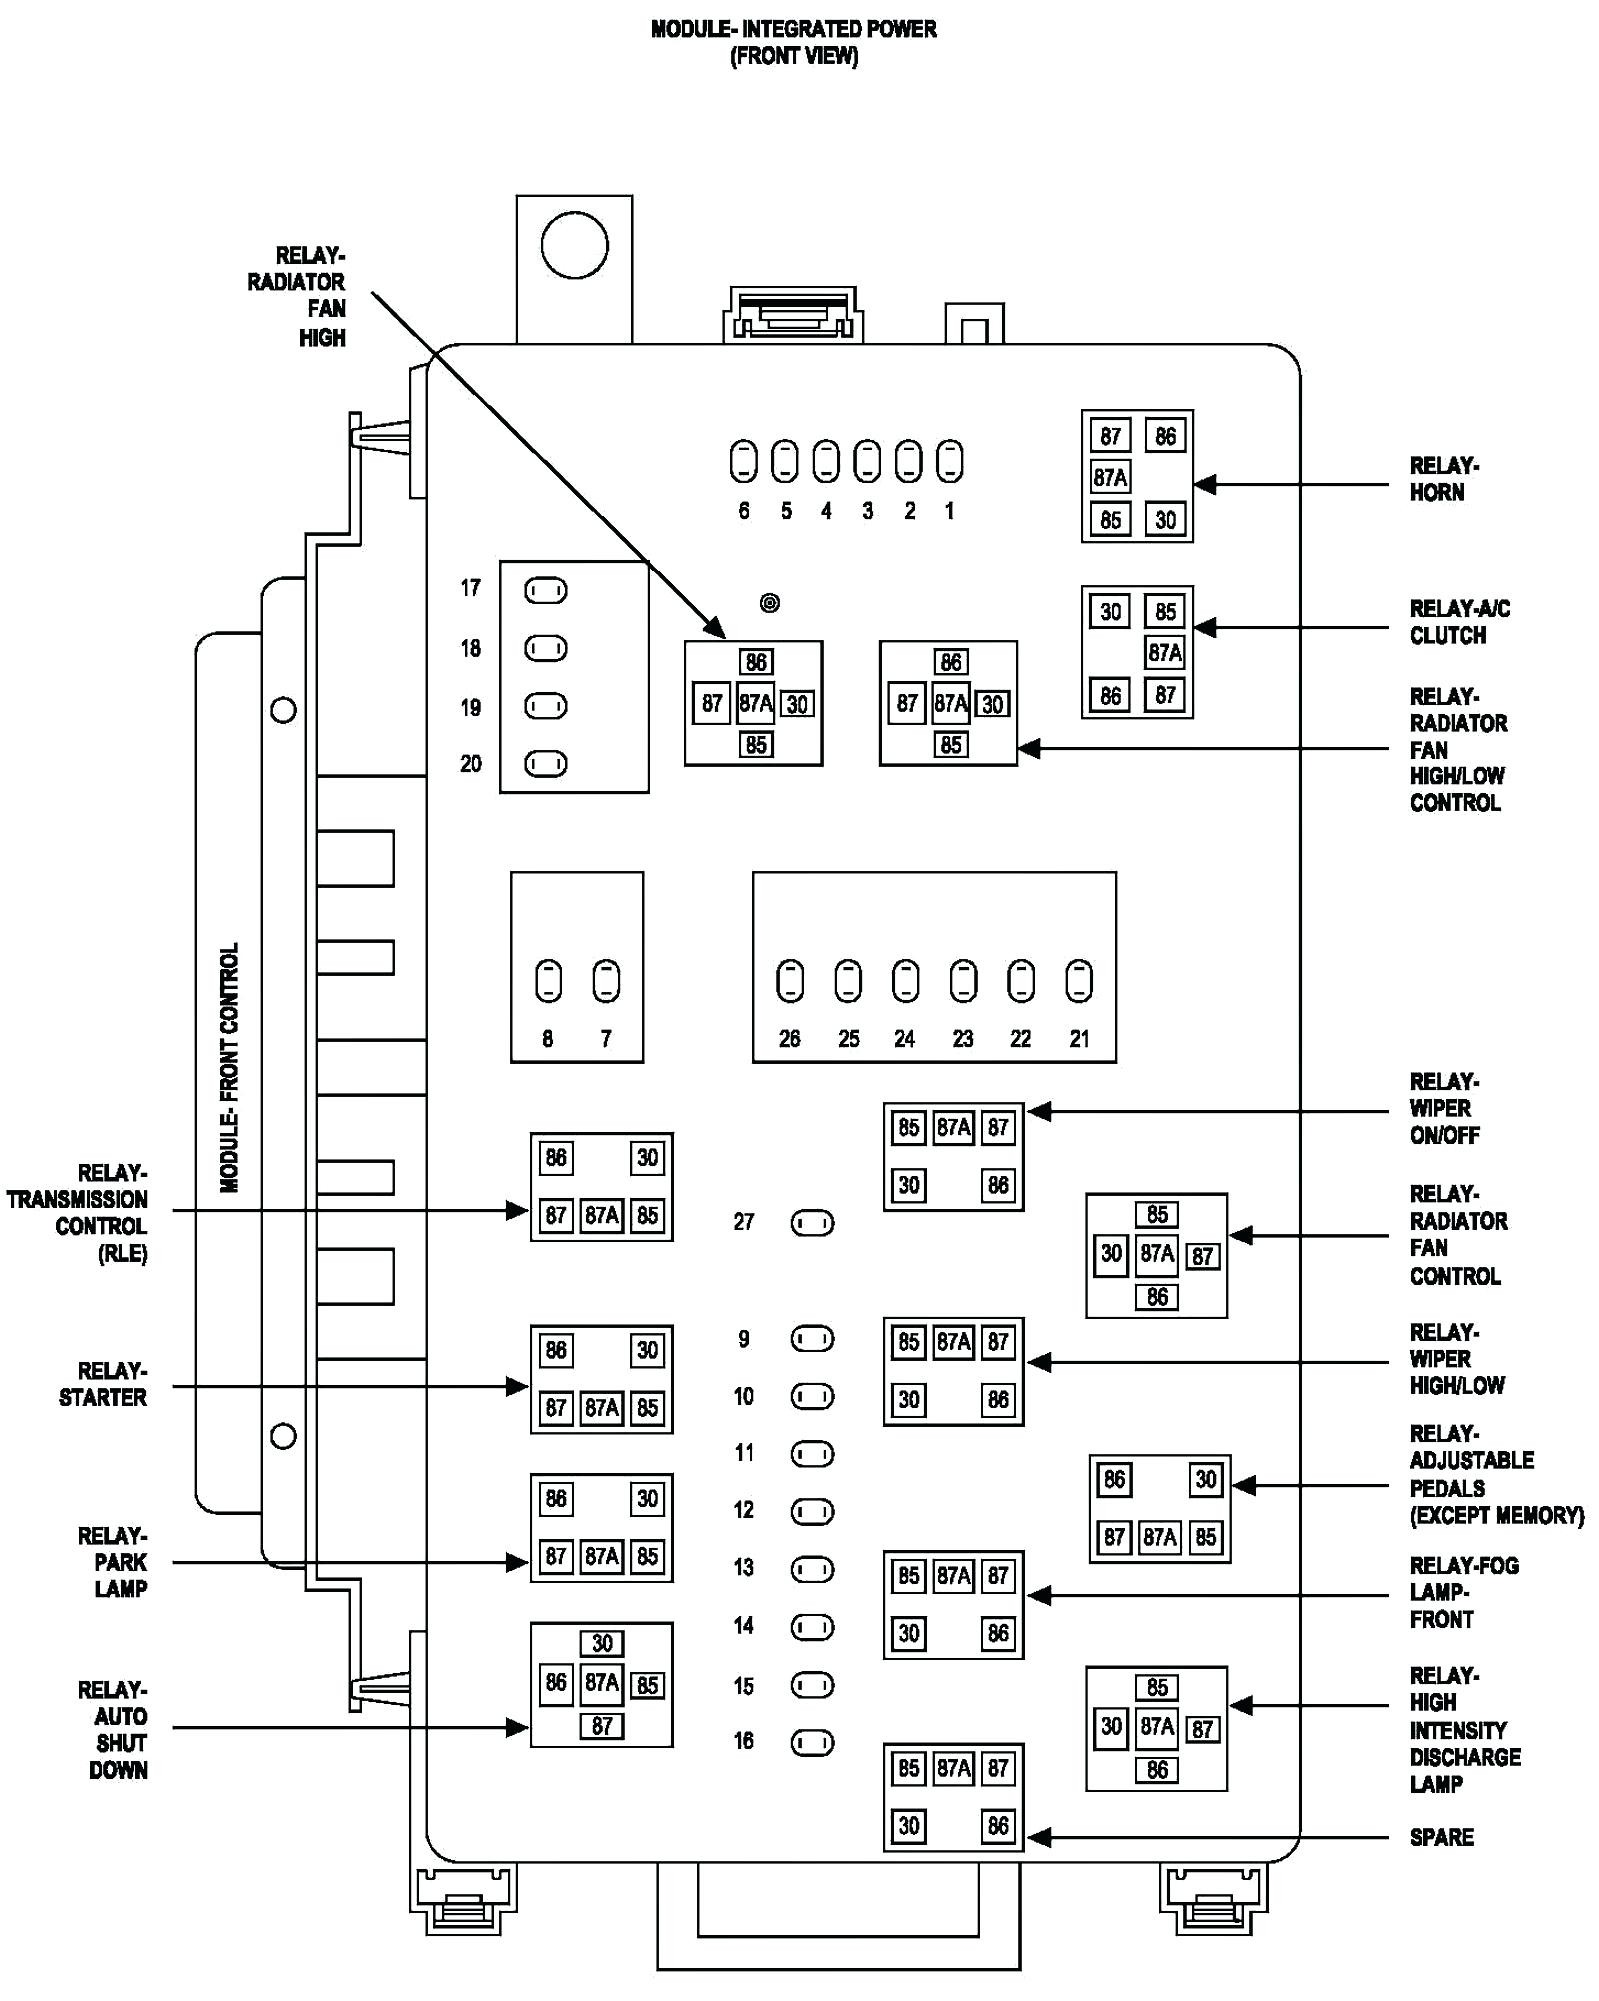 2007 sebring fuse panel diagram - volvo engine coolant for wiring diagram  schematics  wiring diagram schematics